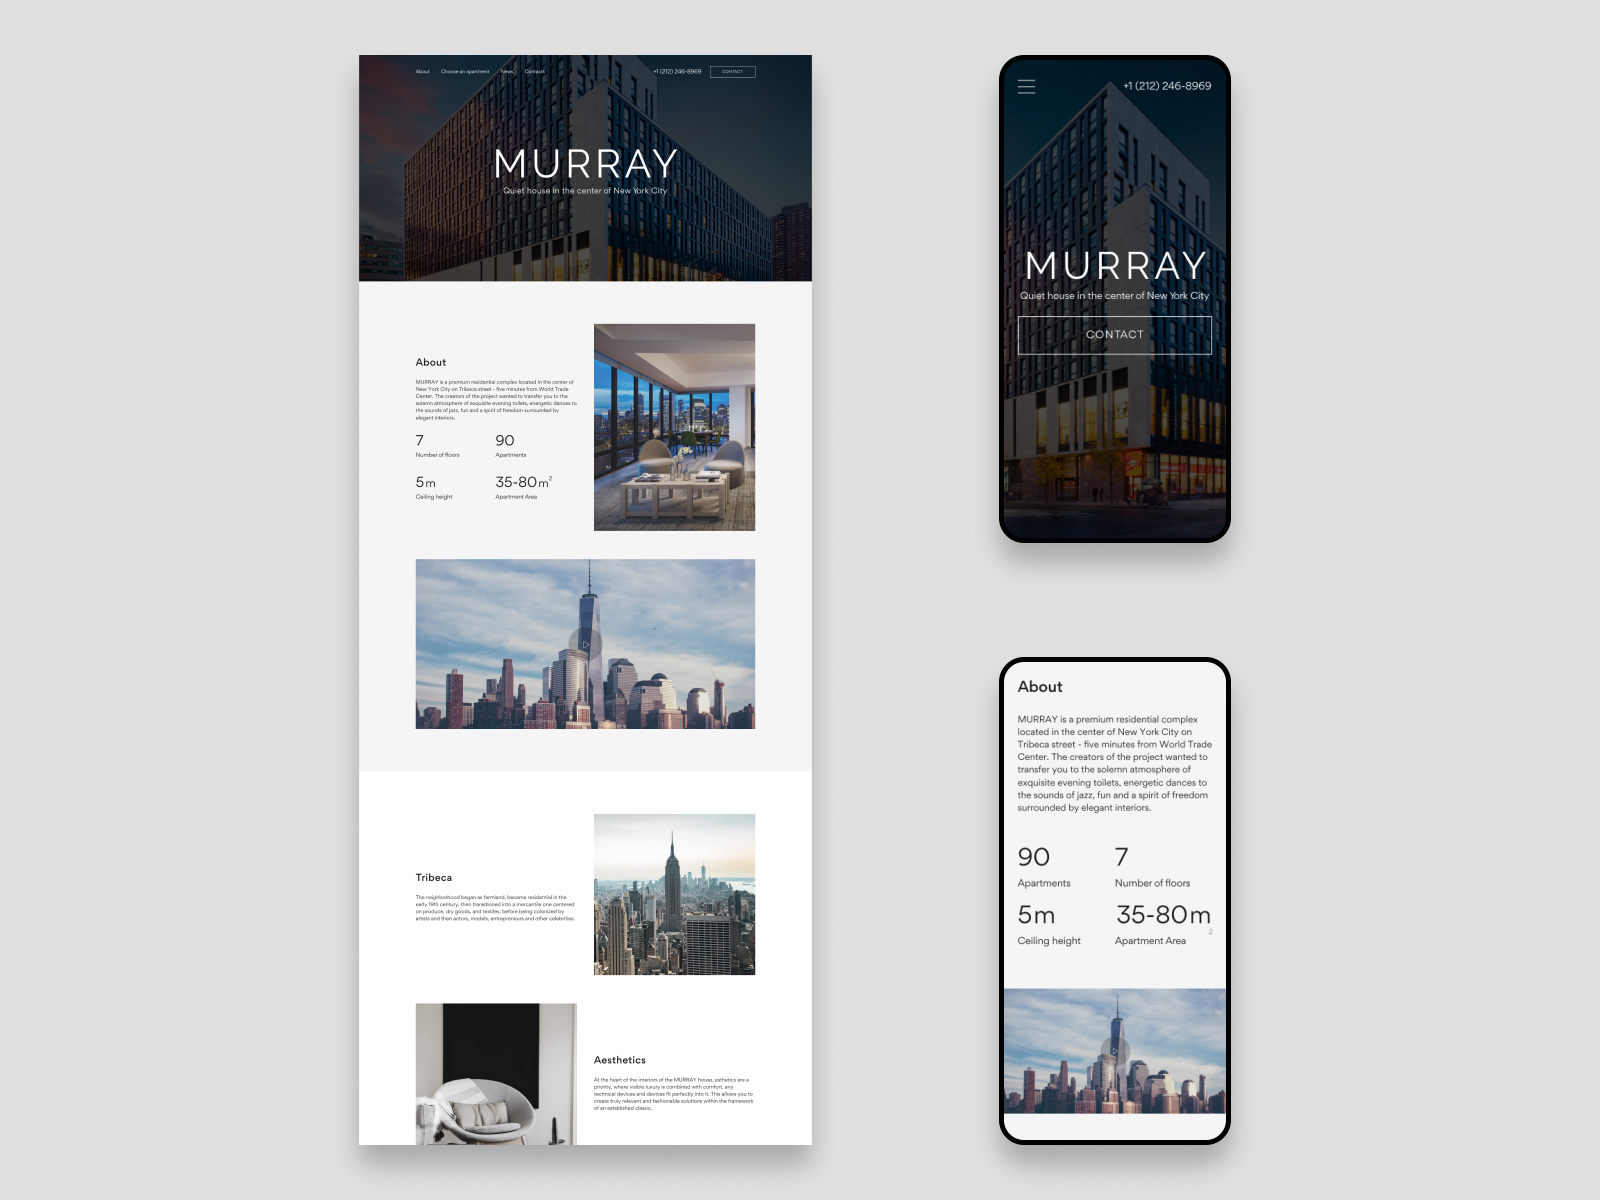 MURRAY - Luxury apartments website by Viktor A on Dribbble